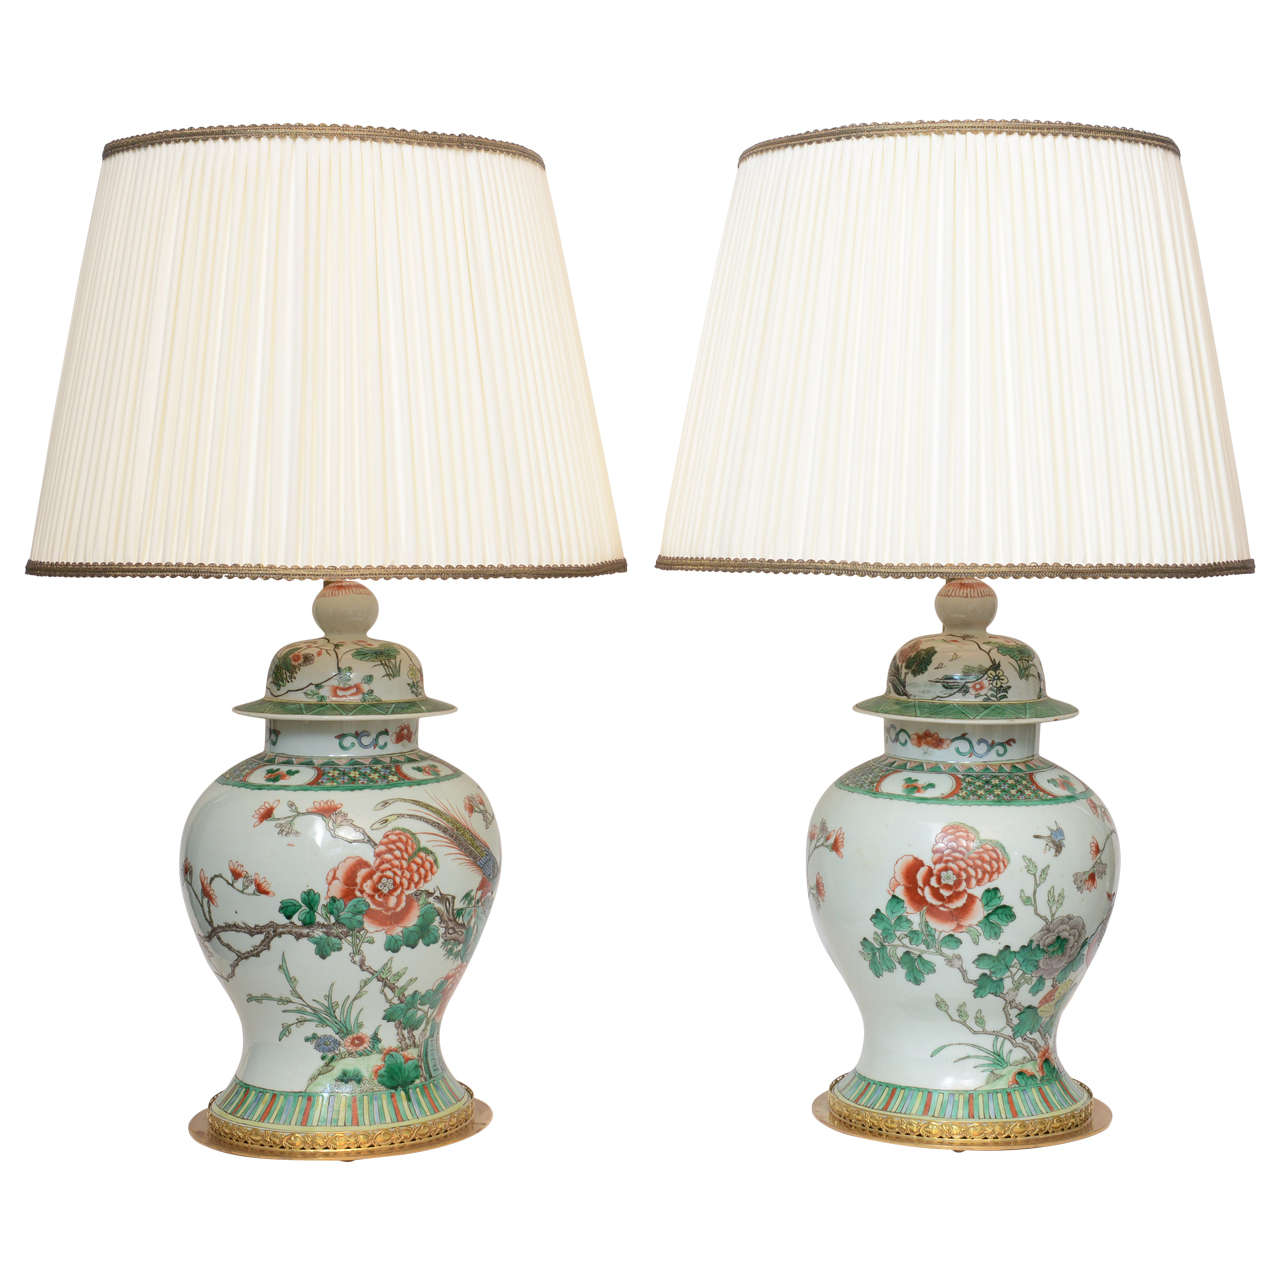 Attractive Pair Of 19th Century Chinese Ginger Jar Lamps, With Painted Birds And  Flowers For Sale At 1stdibs